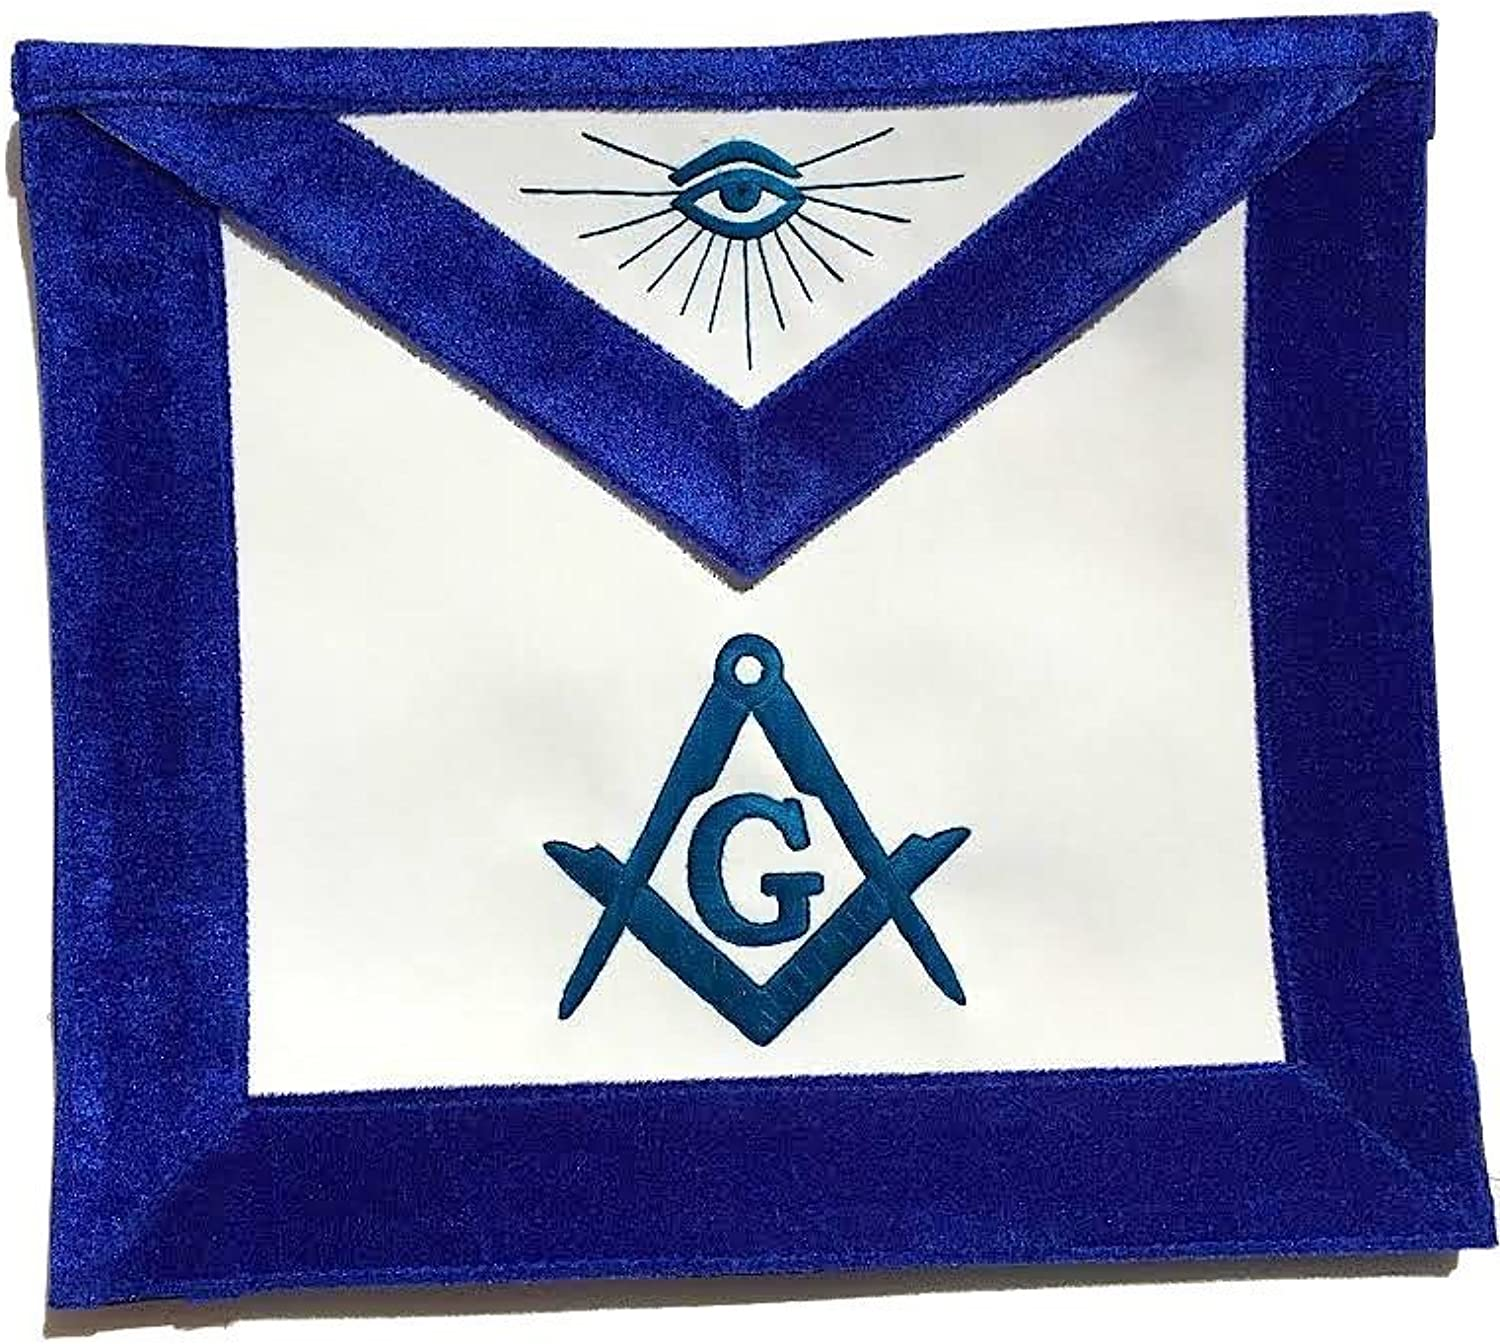 Master Mason bluee Lodge Apron bluee velvet Broders